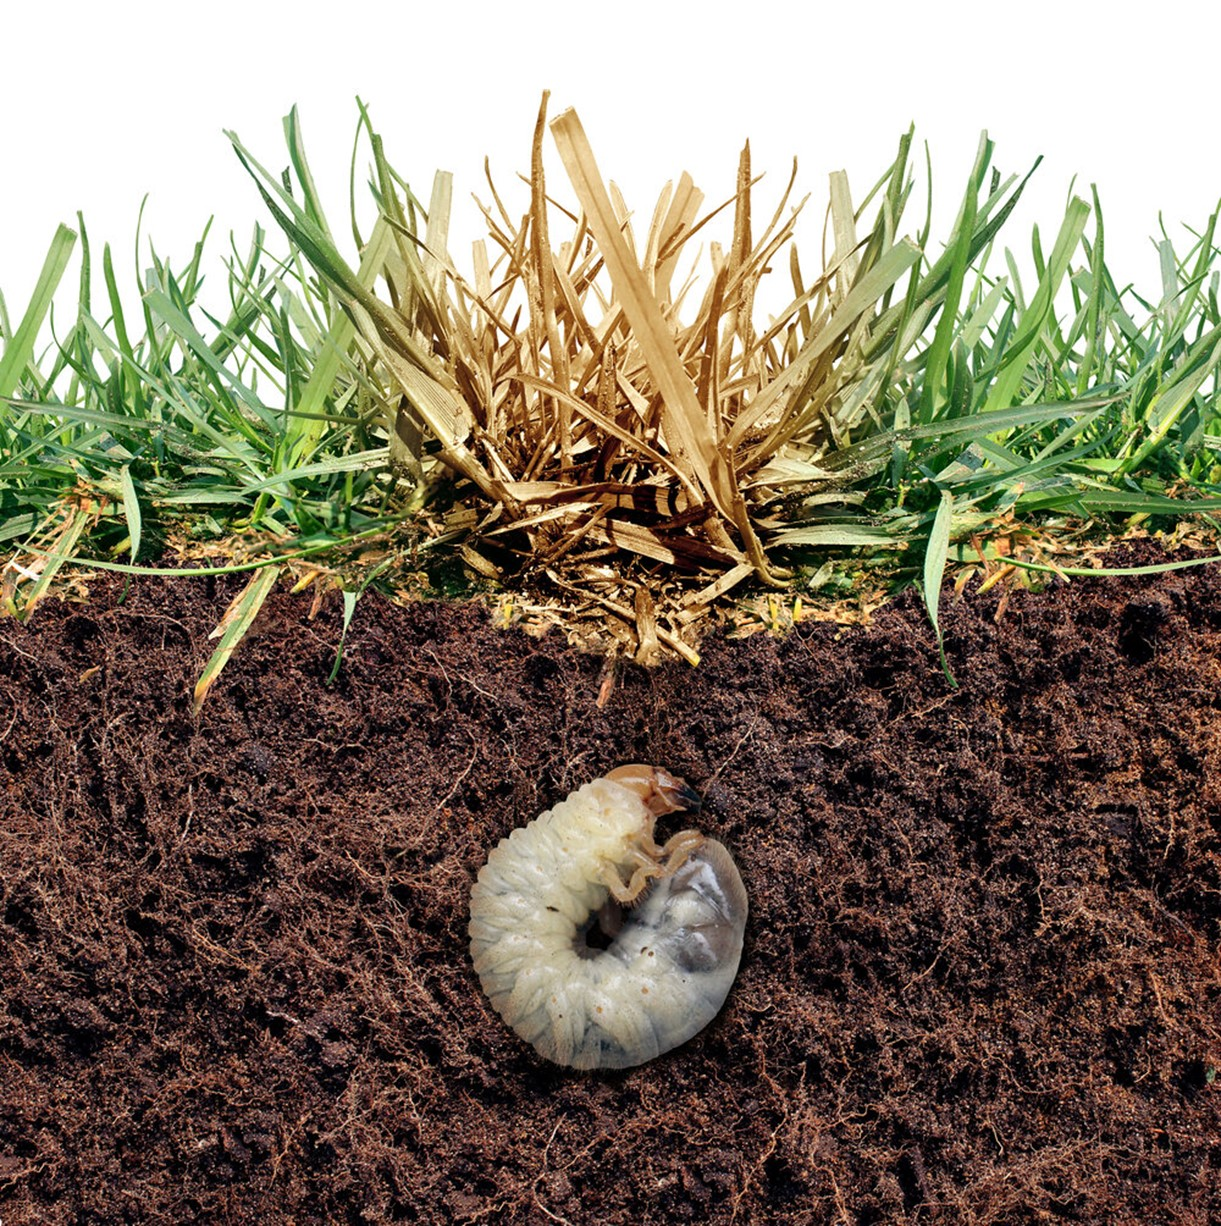 Brown spots on the lawn often signal grubs.